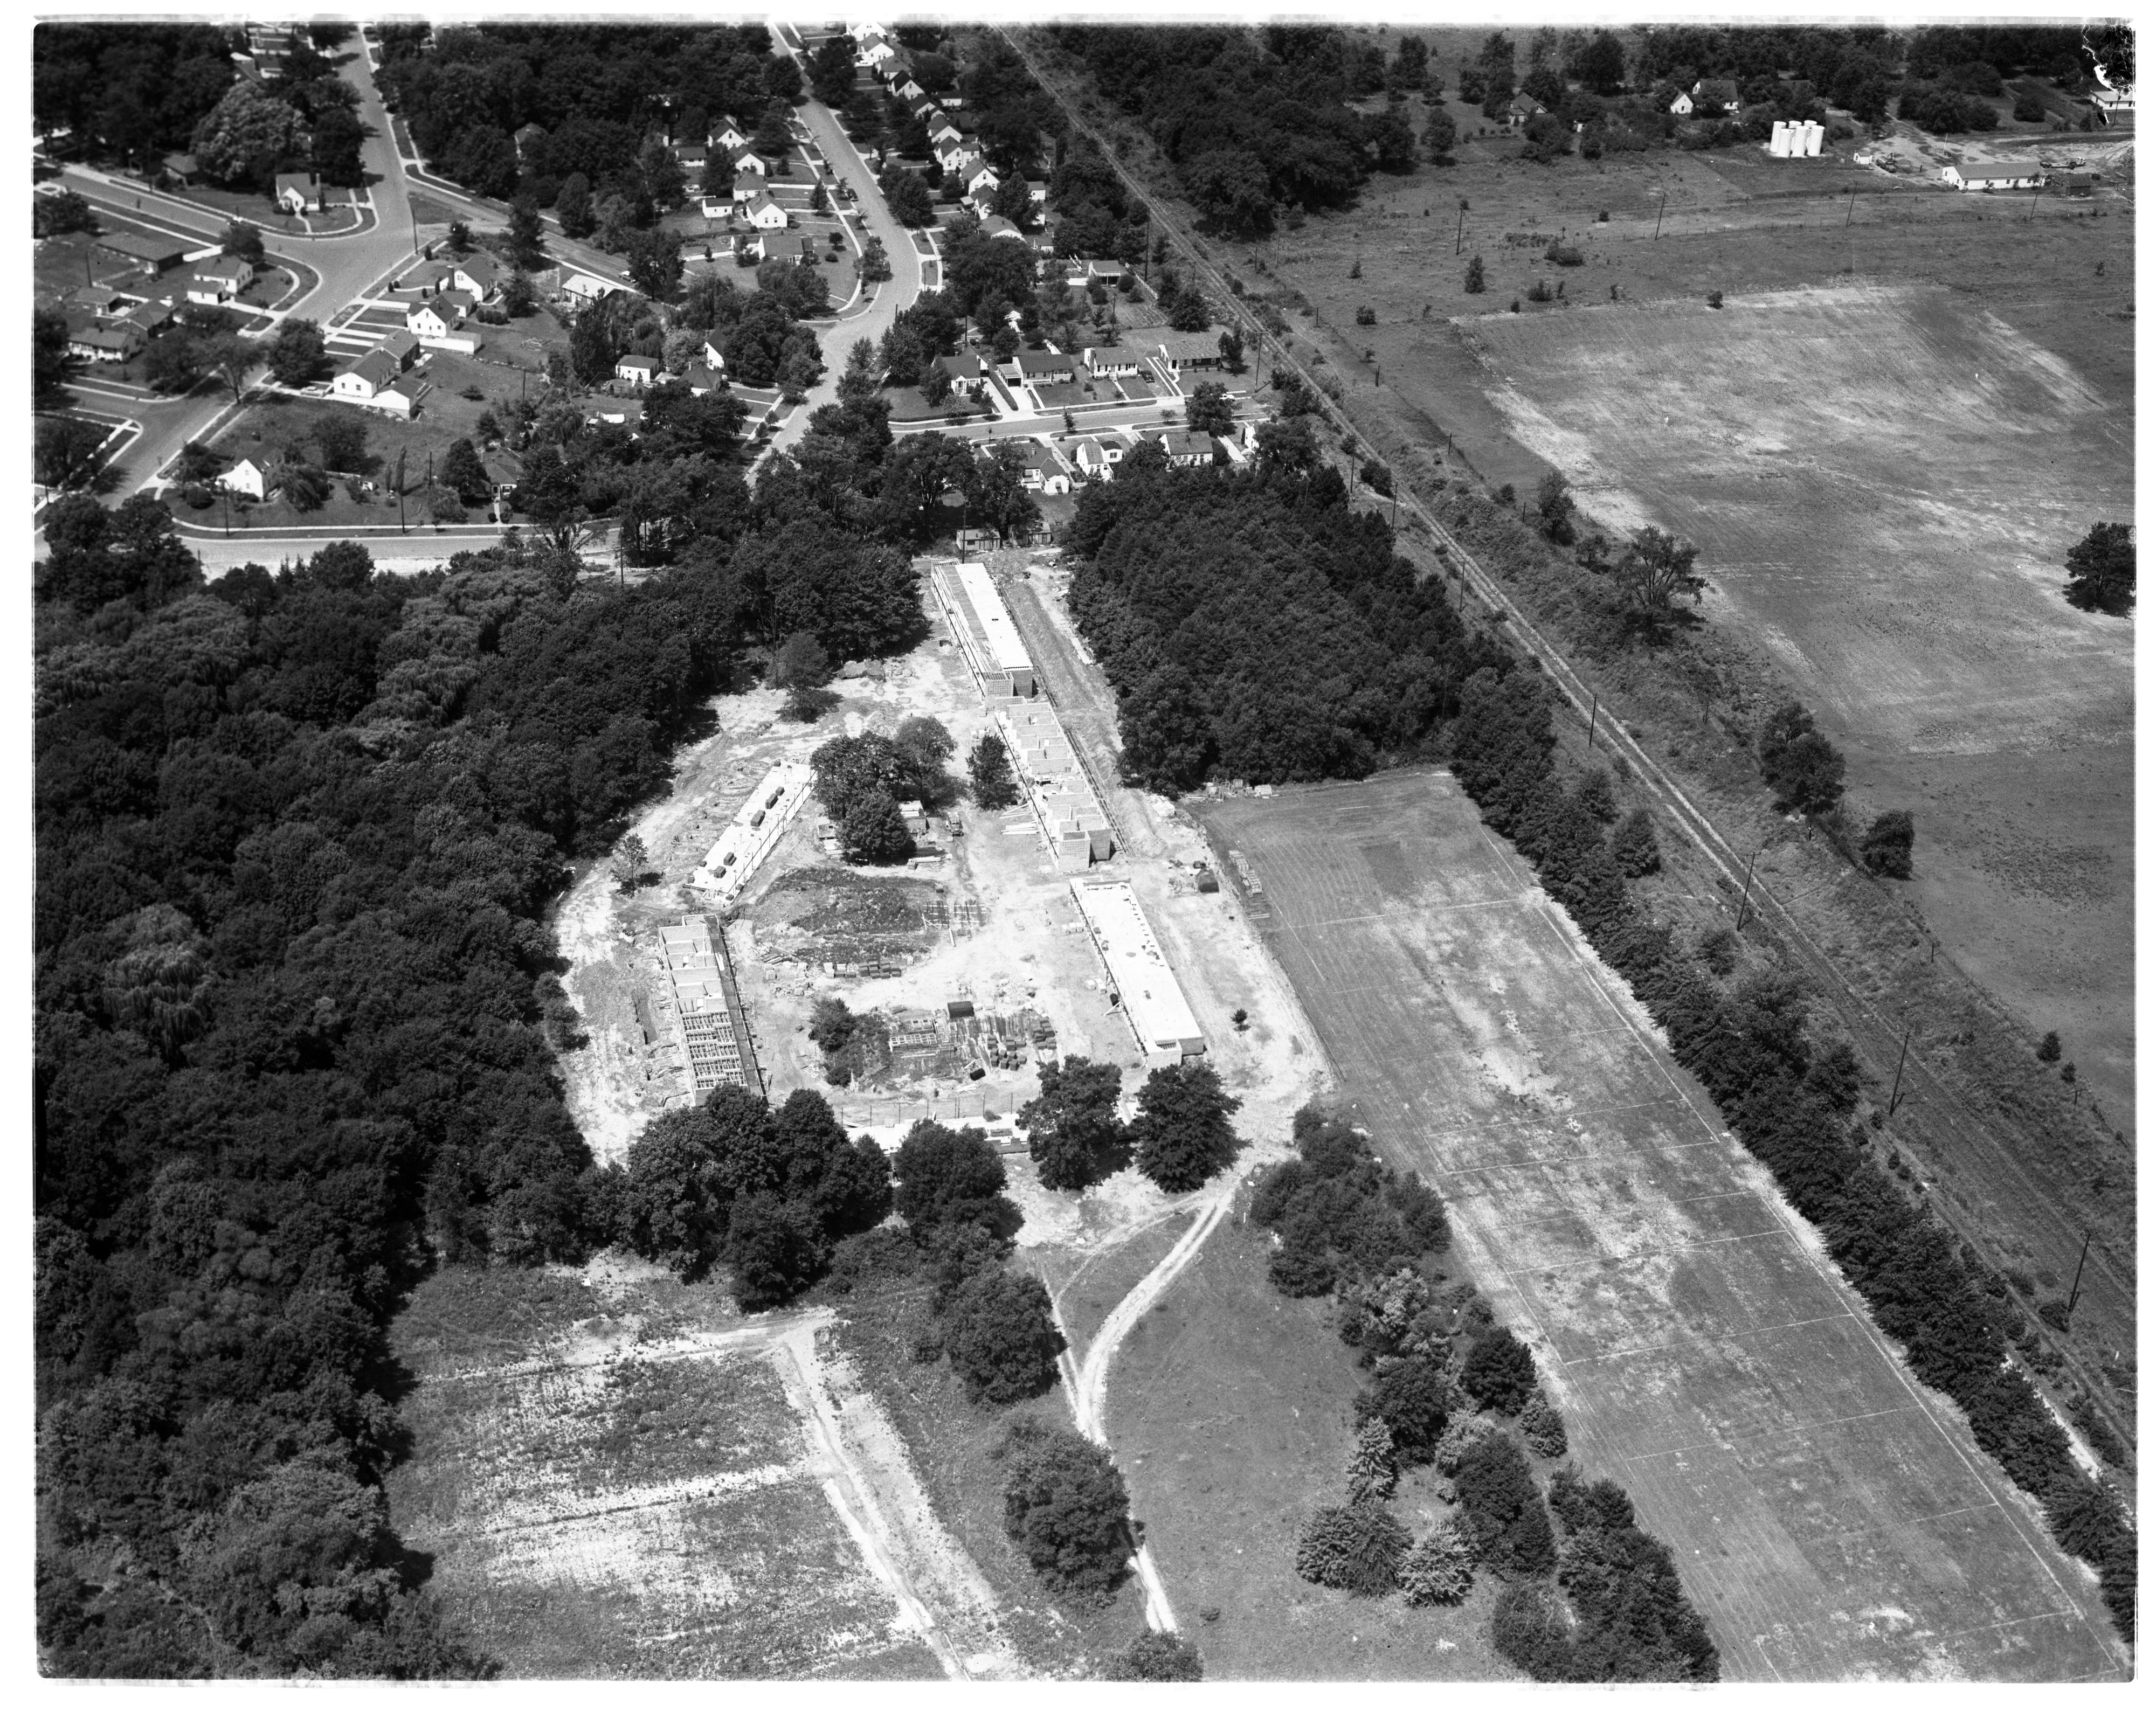 Aerial Photograph of Michigan State Normal College Apartment Buildings, Ypsilanti, July 1955 image